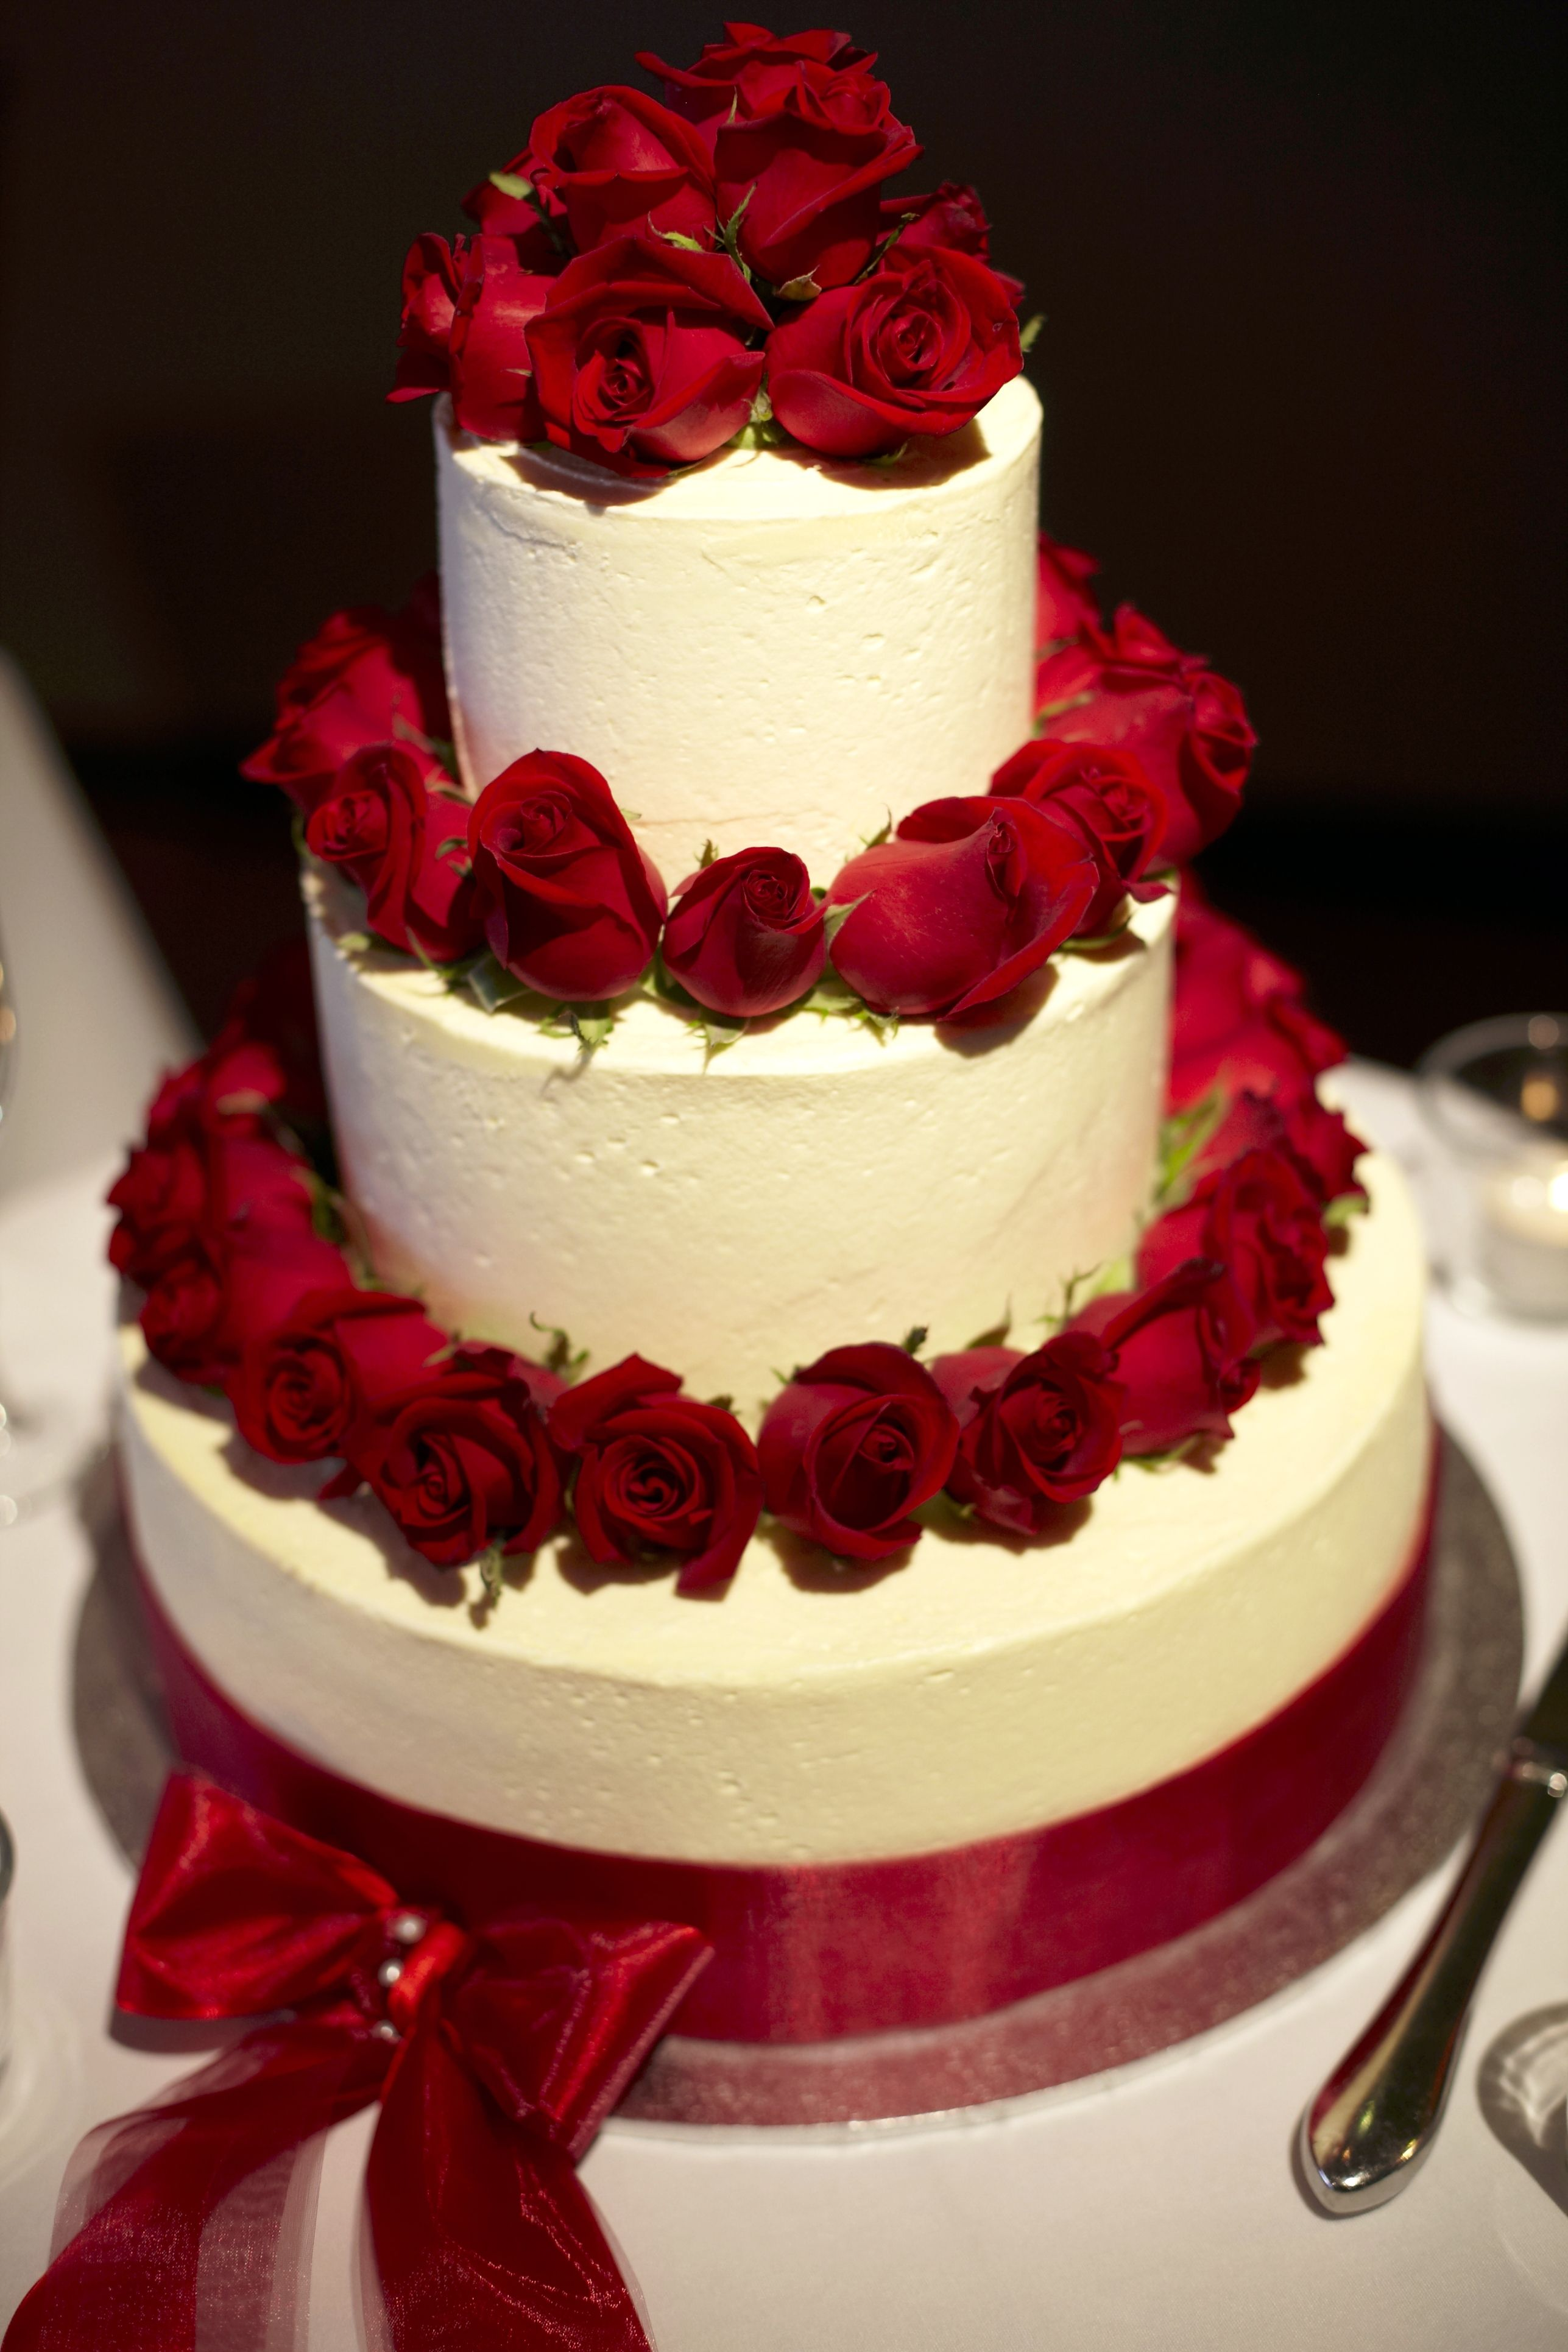 For a cheaper alternative to icing roses on your wedding cake fresh